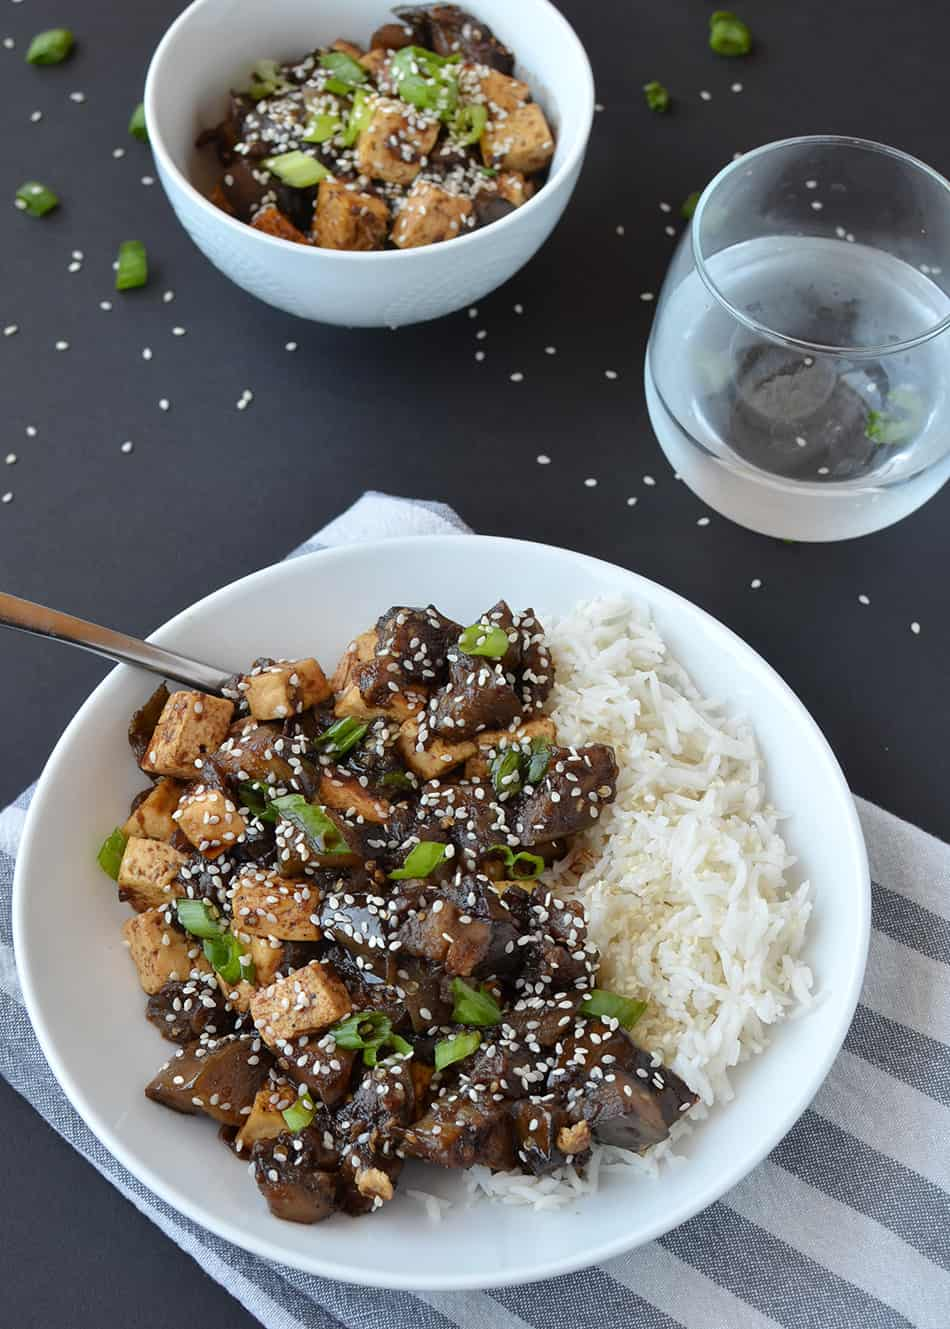 Vegan Eggplant Teriyaki Stir-Fry with Tofu